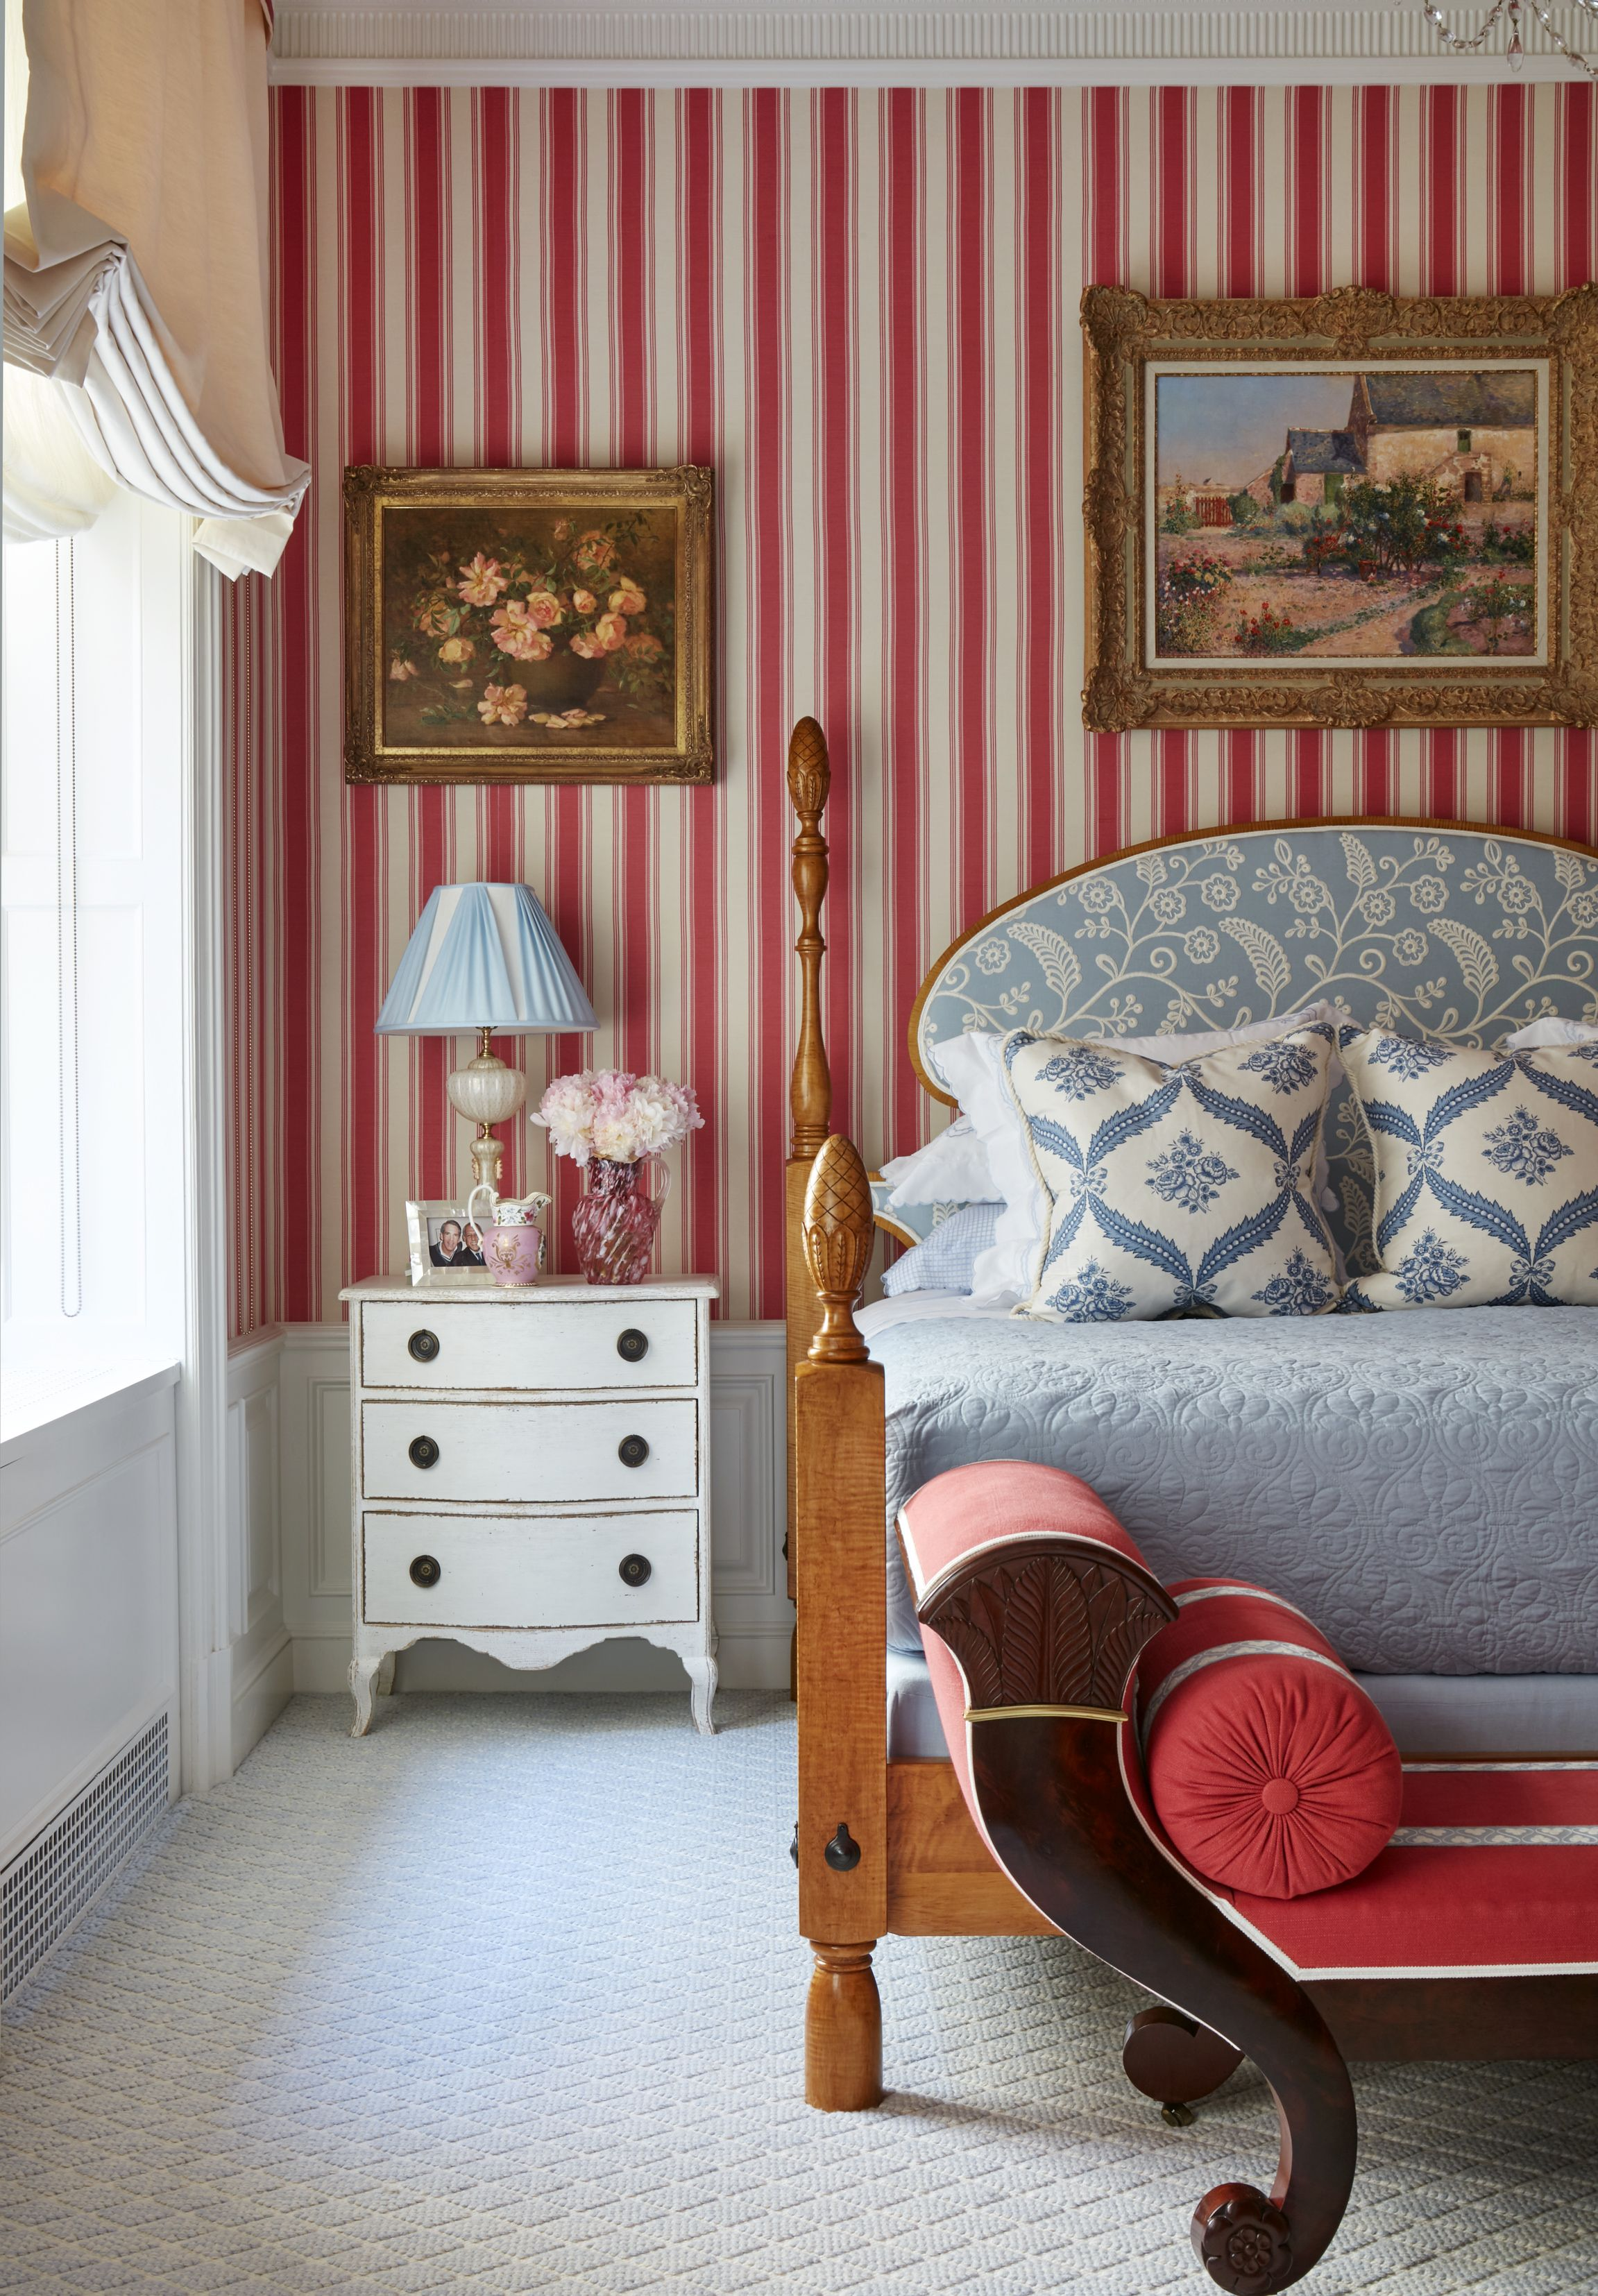 Peak tv may have been a bit less abundant than i. 85 Best Bedroom Ideas 2021 Beautiful Bedroom Decorating Tips